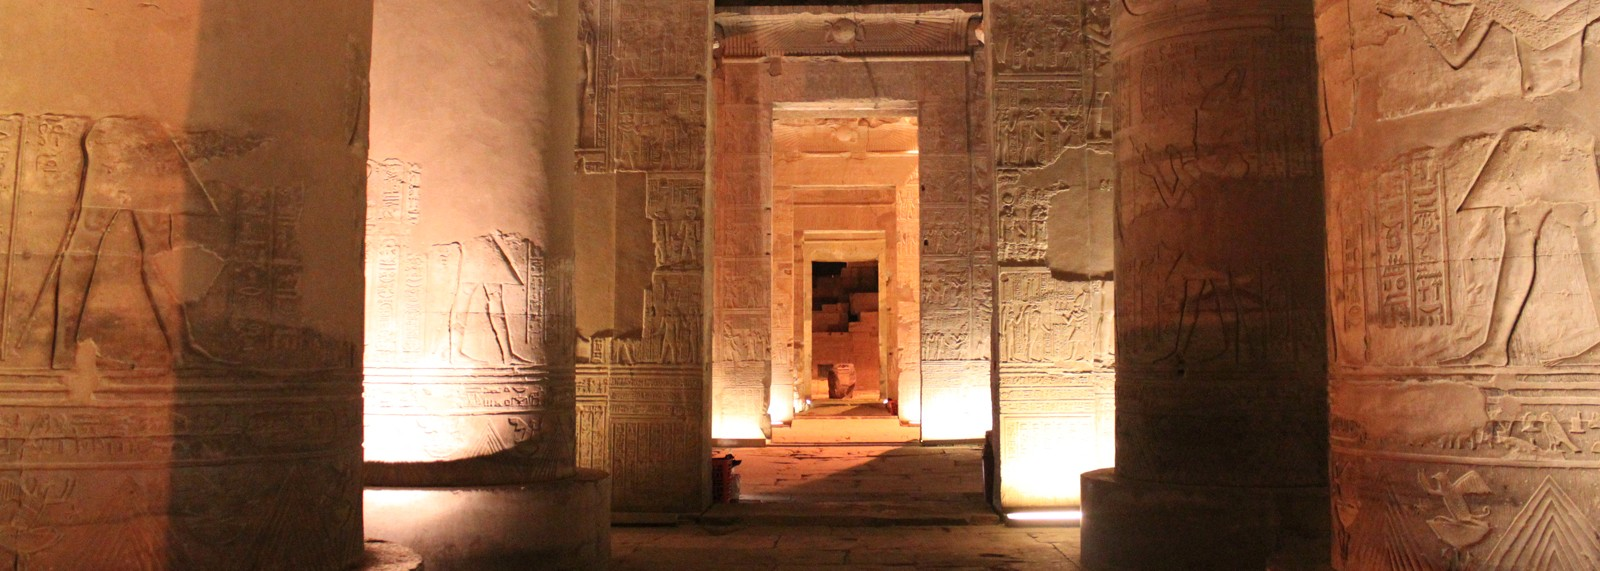 egyptian site photographed by thrive communications